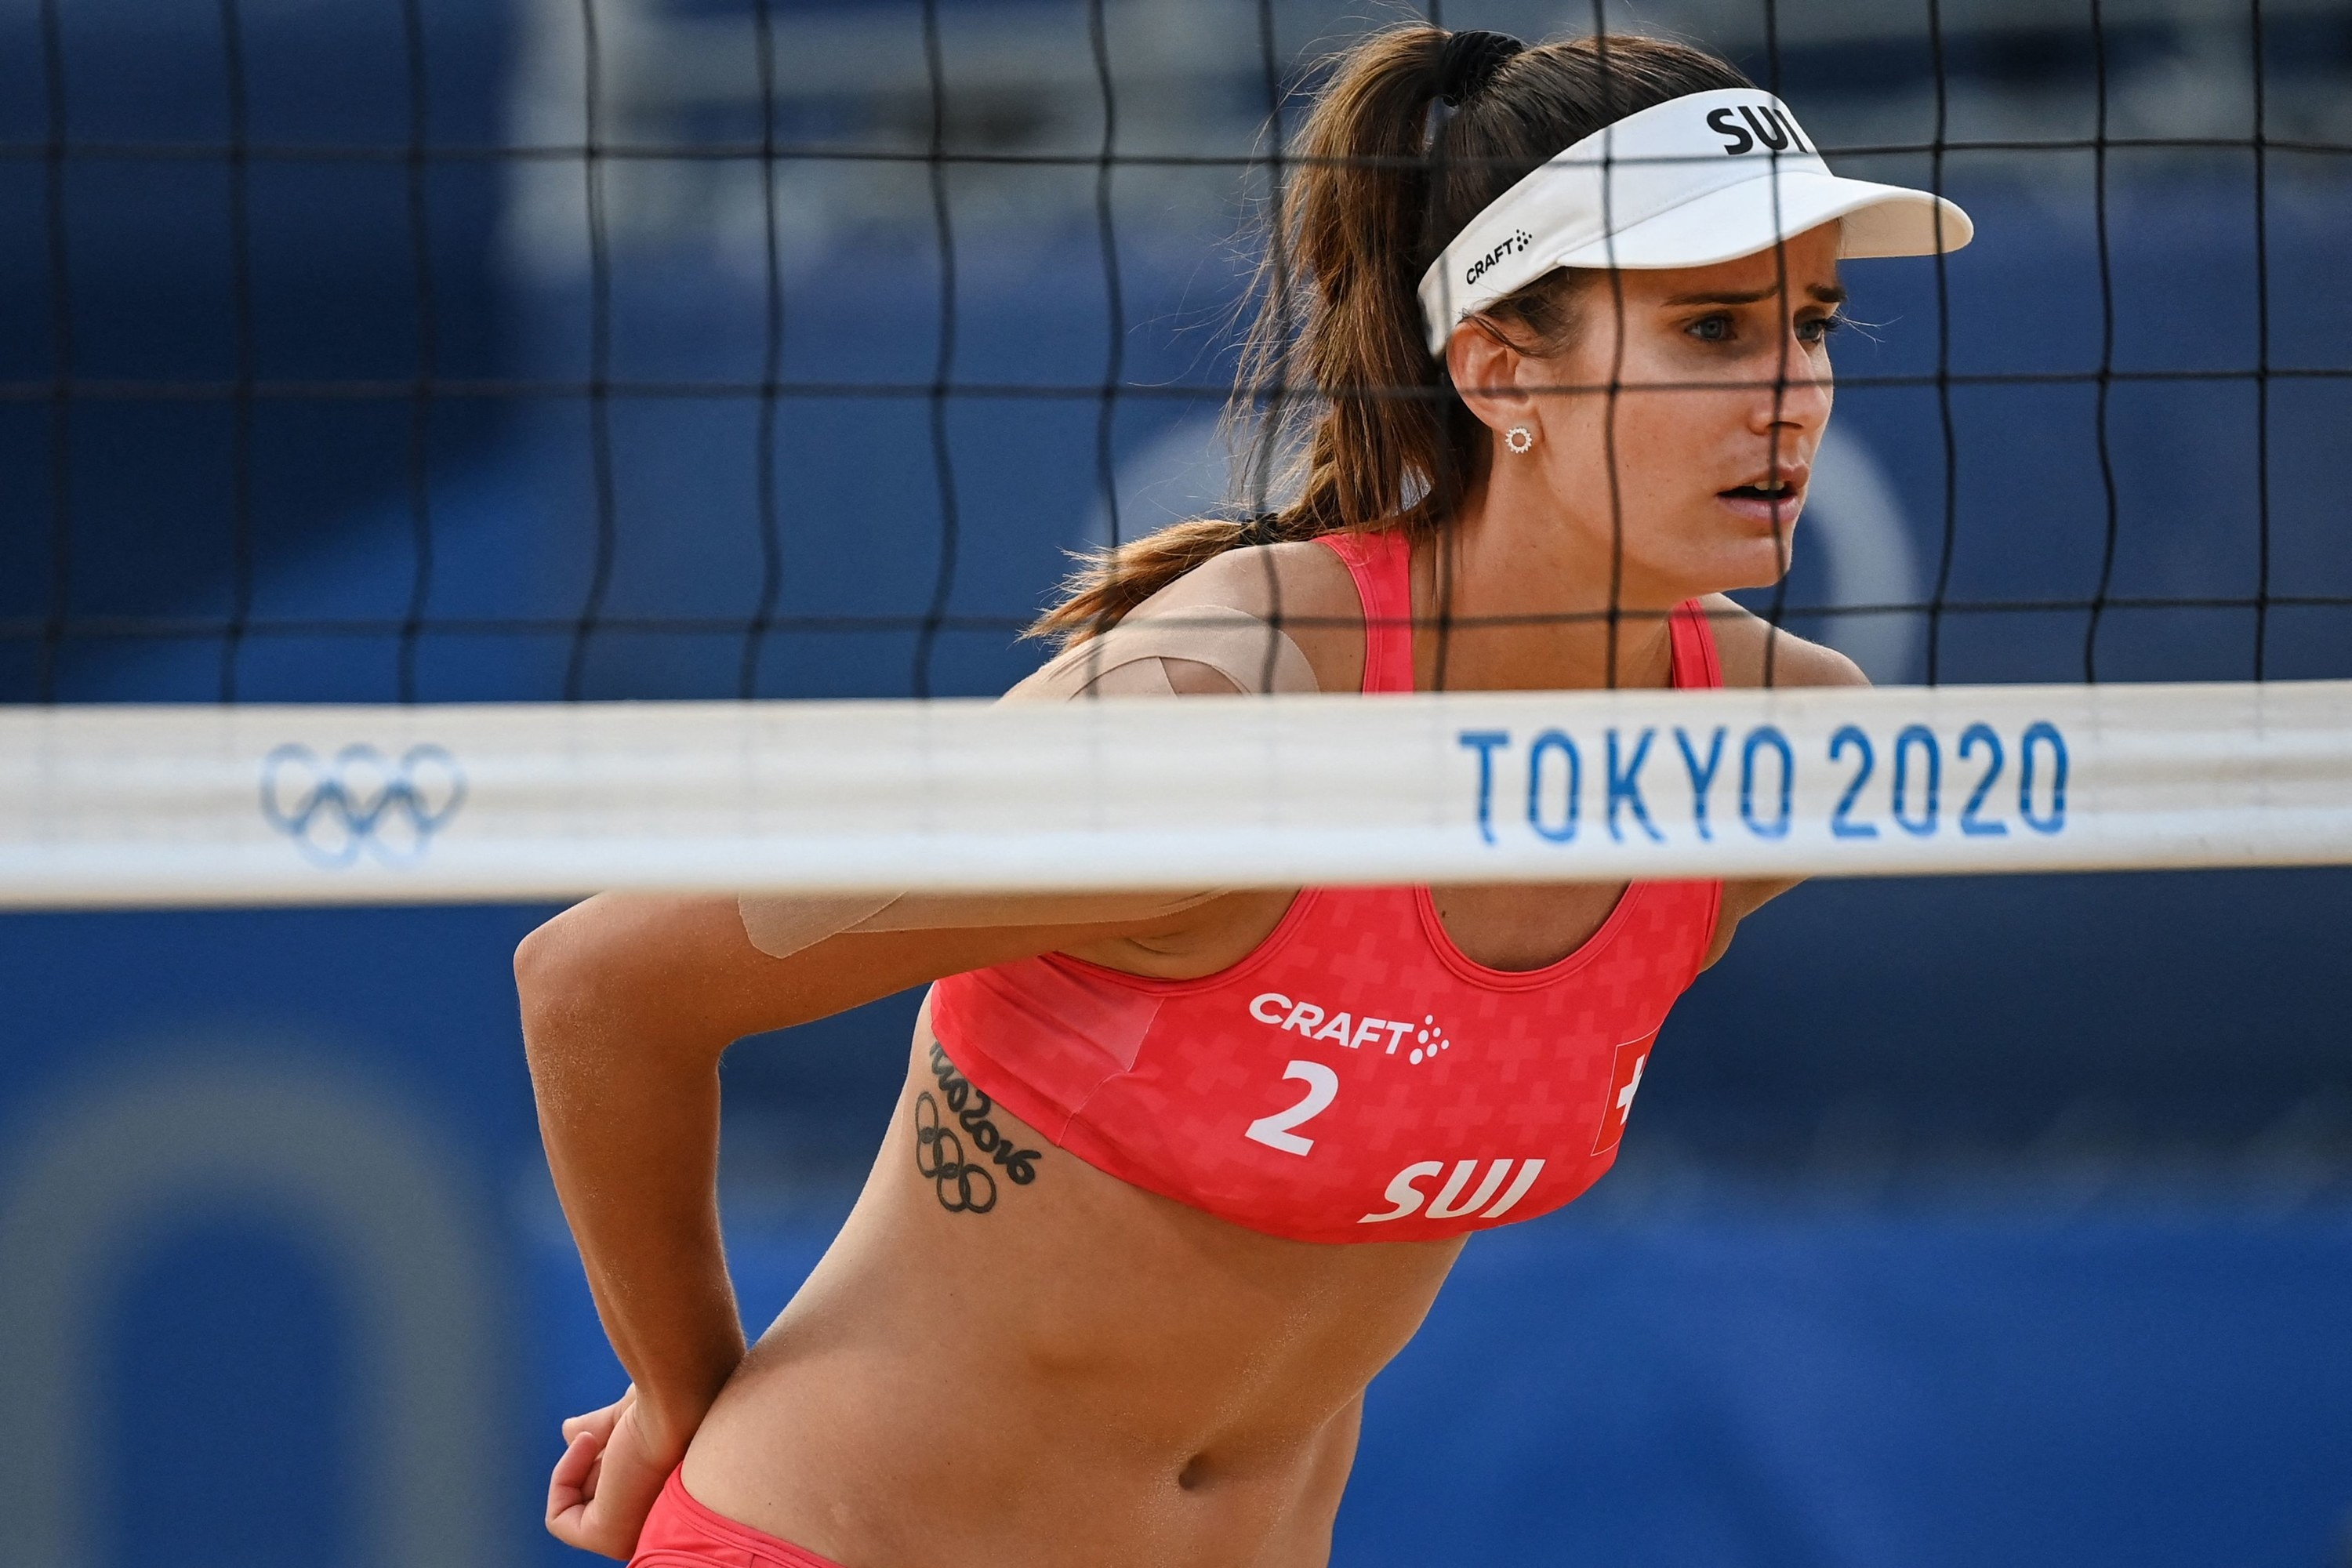 Olympic volleyball player stands close to the net during a match.